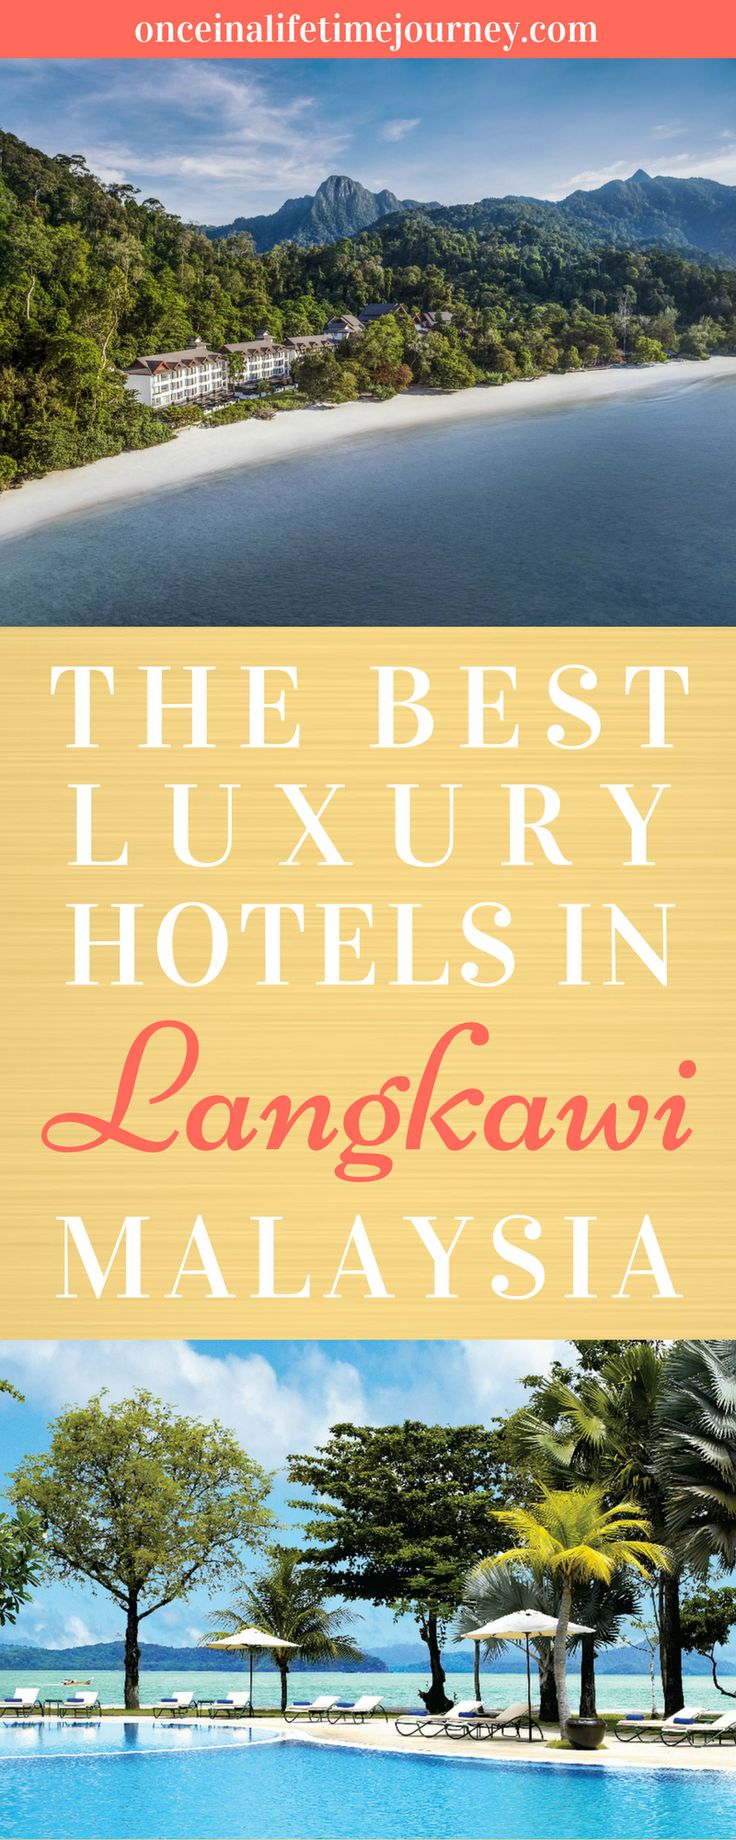 Langkawi is Malaysia's Bali and Phuket all in one. There are laid-back beach parties at Pantai Cenang, thick jungles to explore, rich mangroves, white sand beaches, posh marinas and resorts galore. It is no surprise then that the list of Langkawi luxury hotels is long. Click through to see my pick of the best luxury hotels in Langkawi for each type of luxury traveler. | Once in a Lifetime Journey #langkawi #luxury #luxuryhotels #malaysia